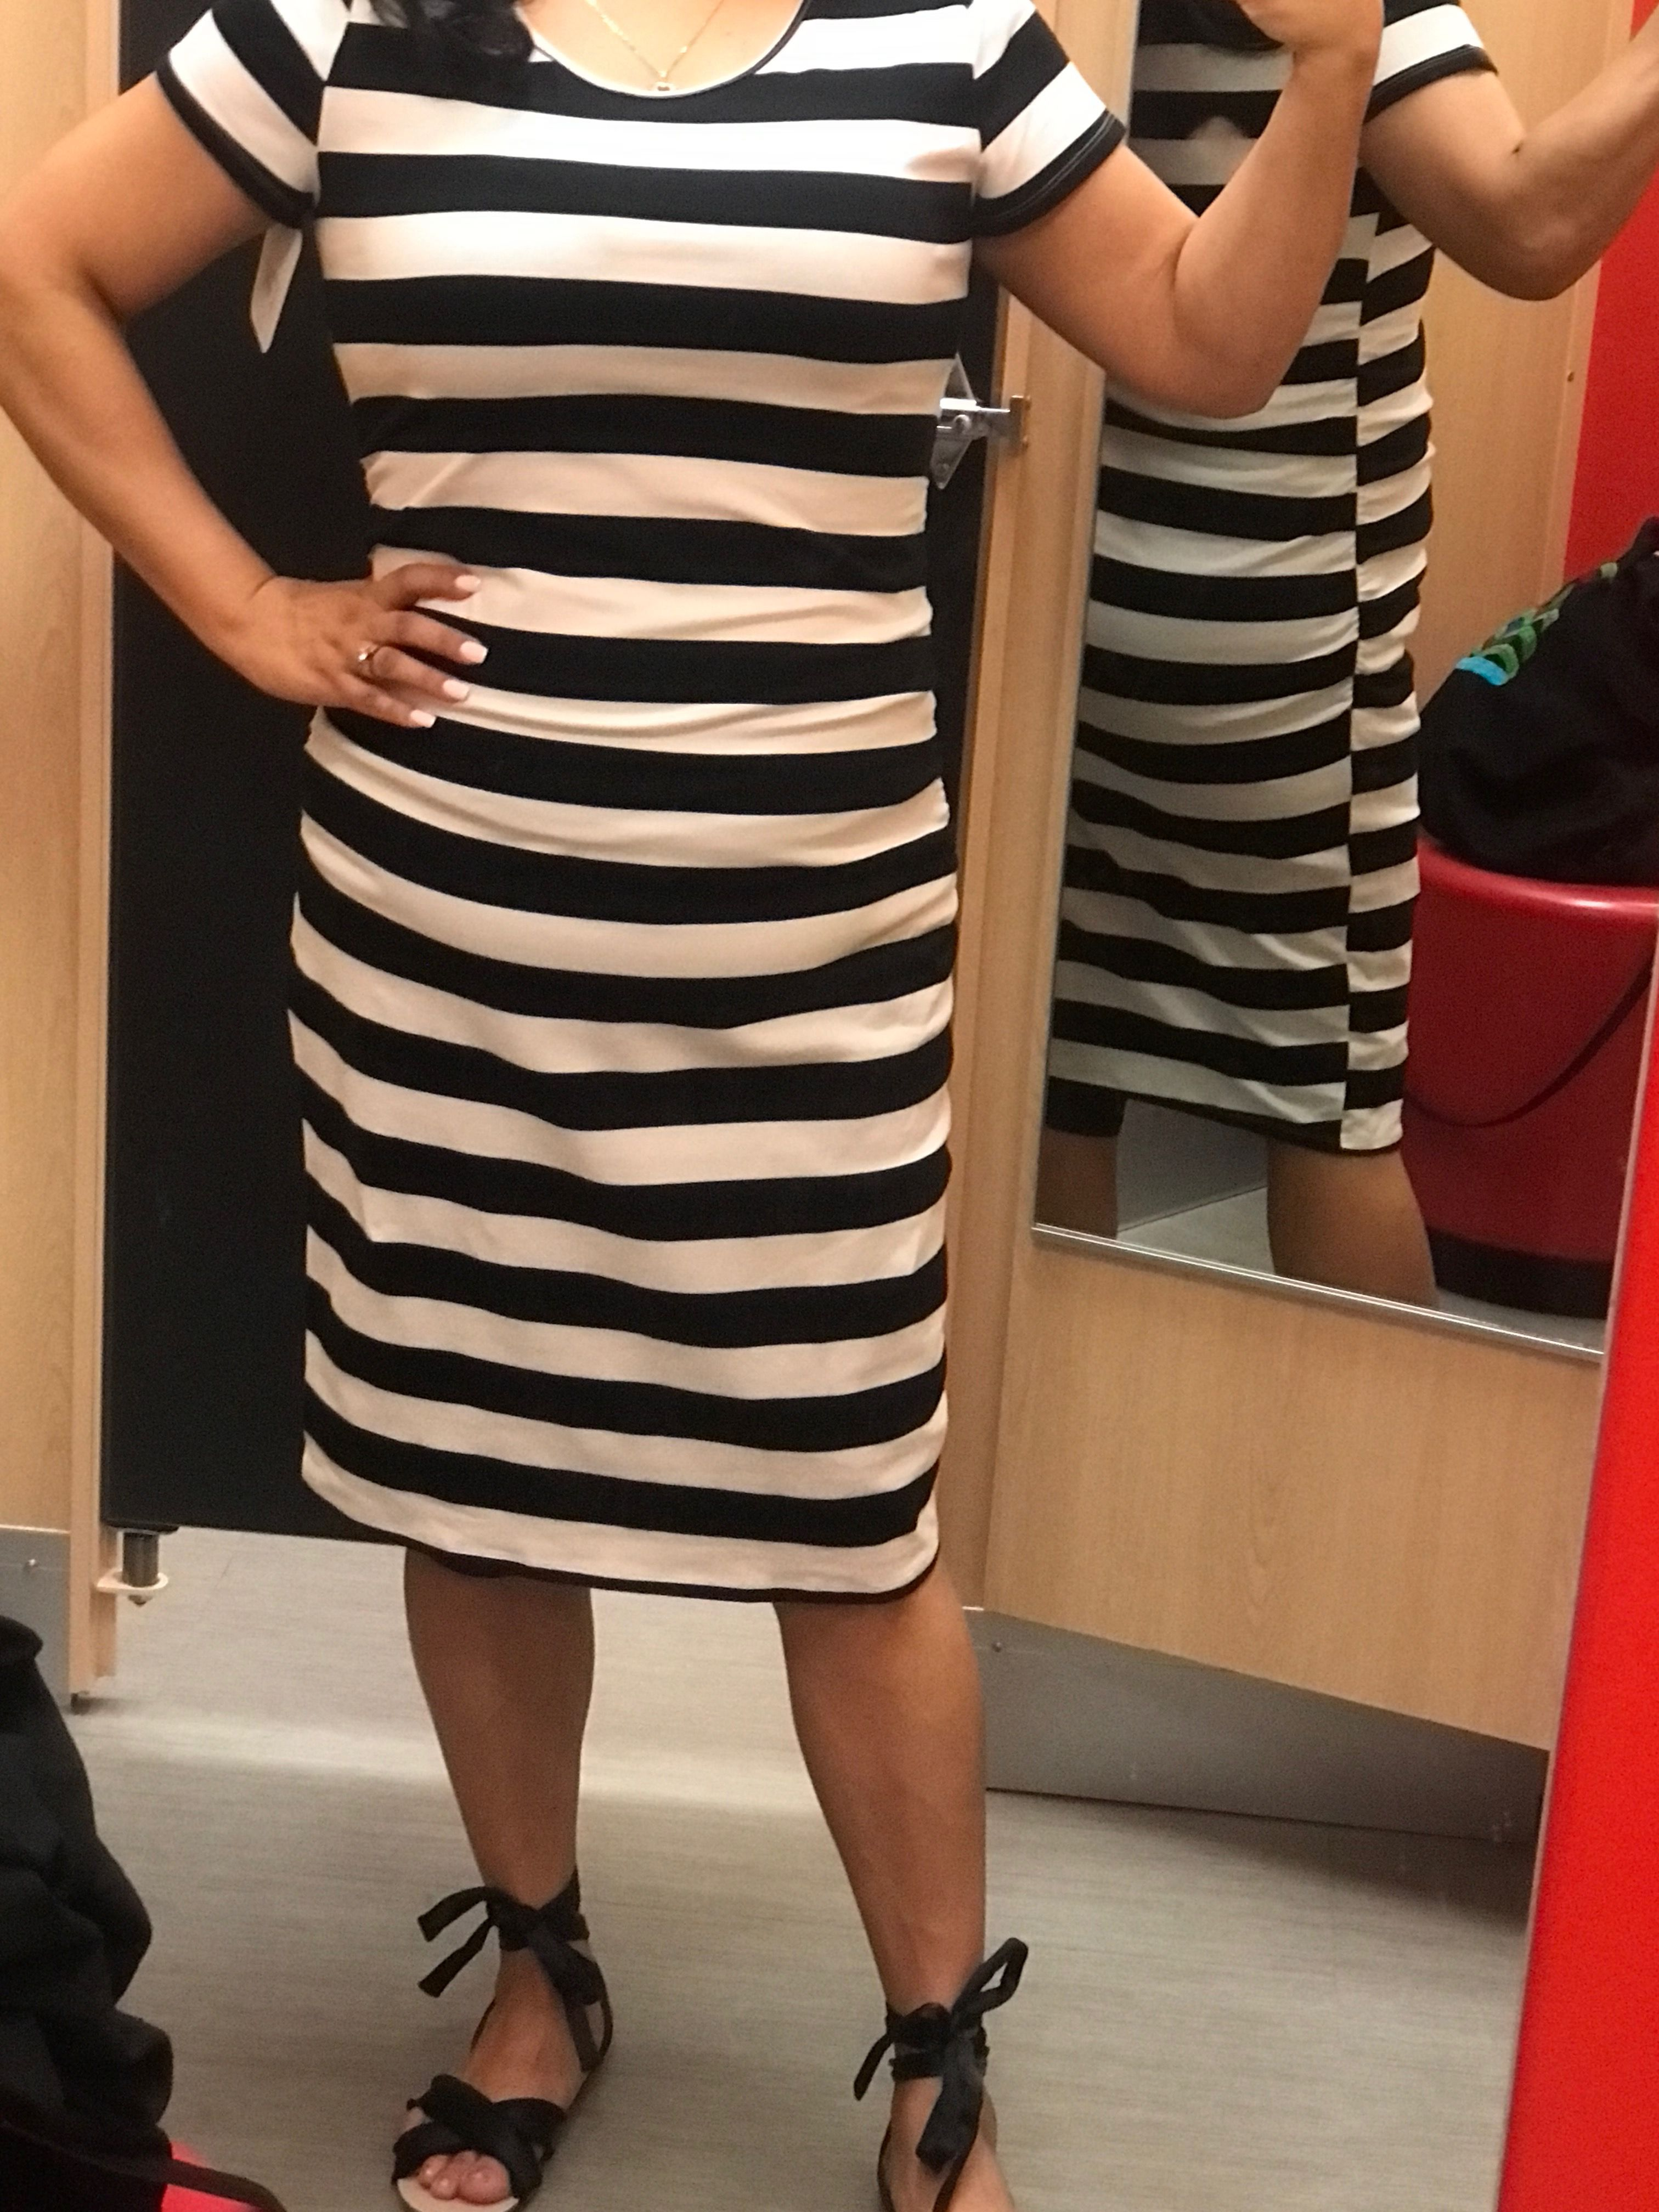 Target Just Had To Have It Fashion Bodycon Dress Dresses [ 4032 x 3024 Pixel ]